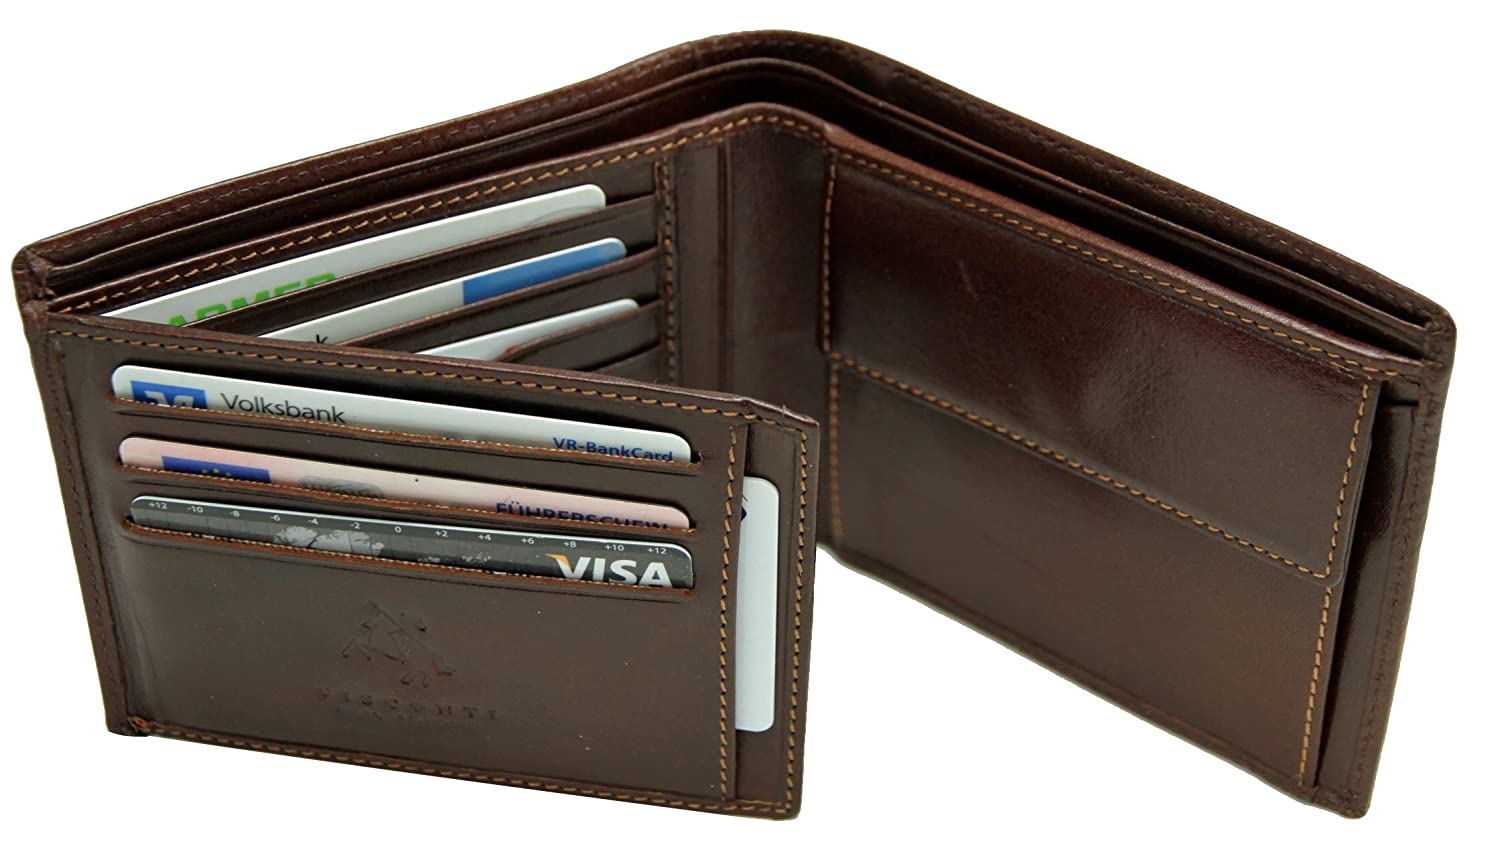 Visconti Portefeuille Cuir Trifold Homme Monza Italian Leather - Porte feuille cuir homme